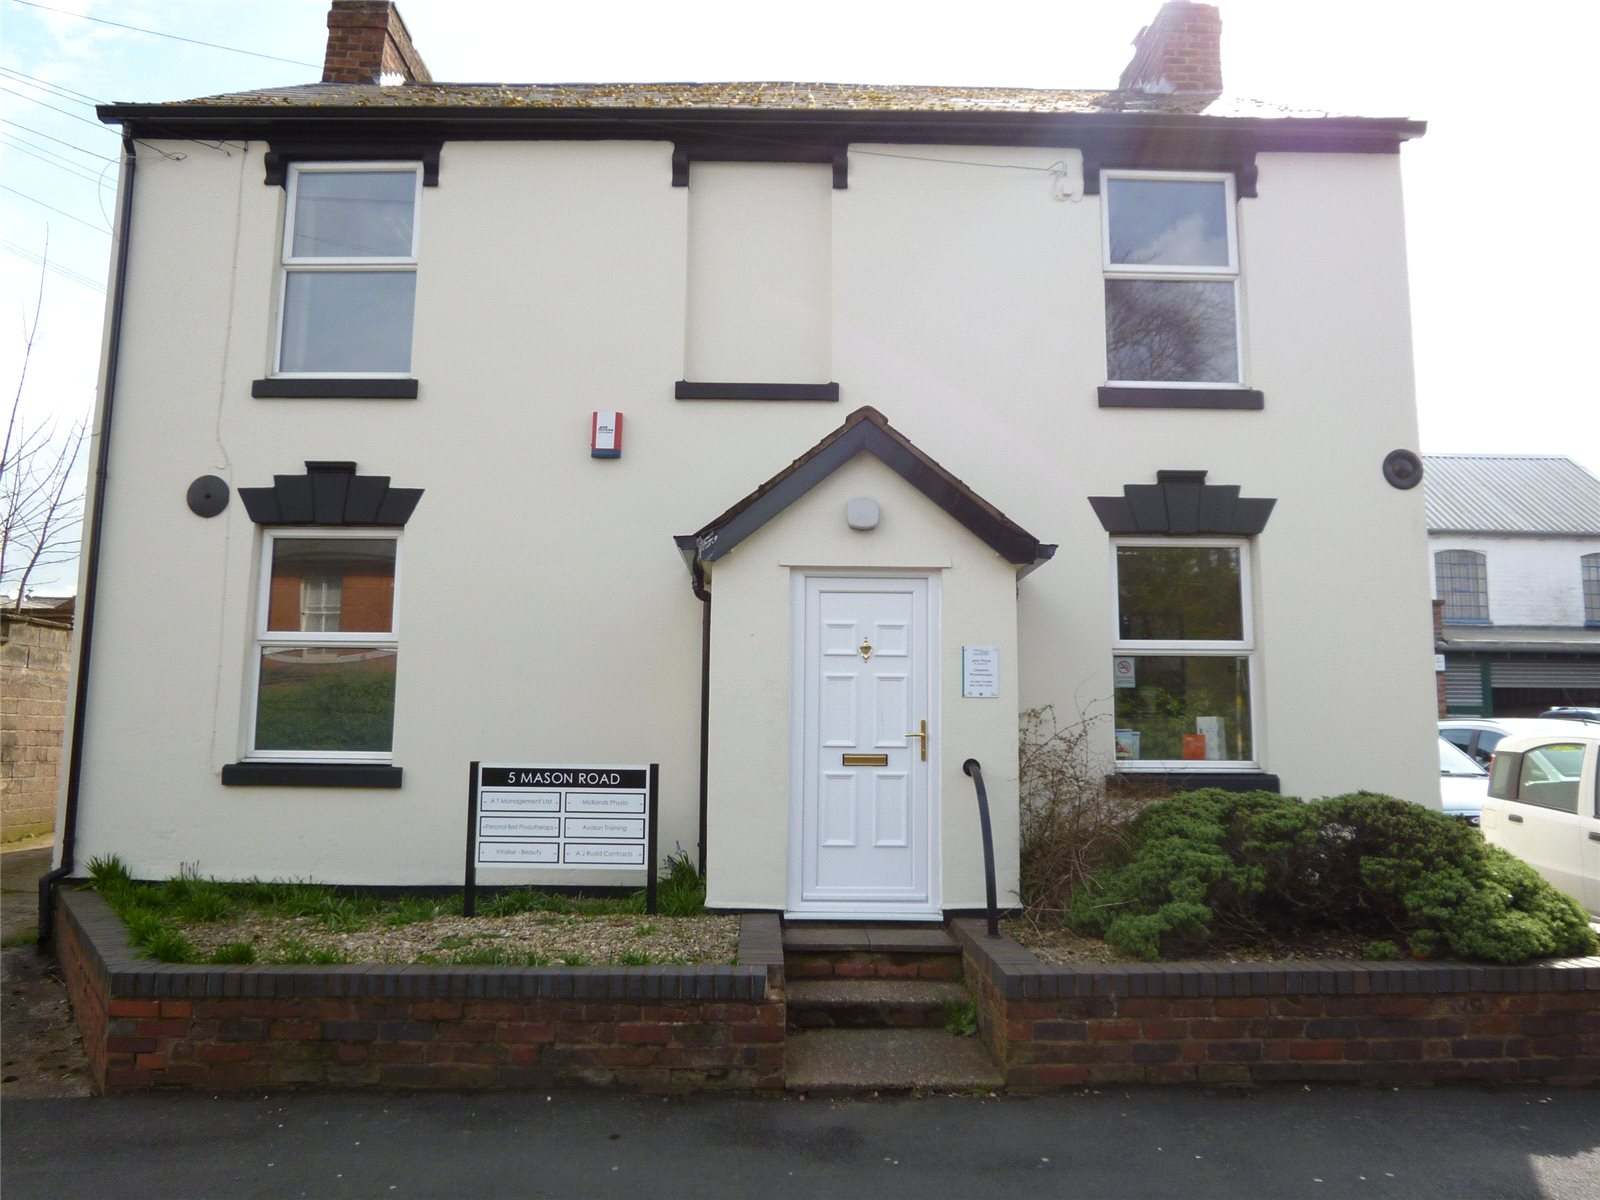 Mason Road, Kidderminster, Worcestershire, DY11